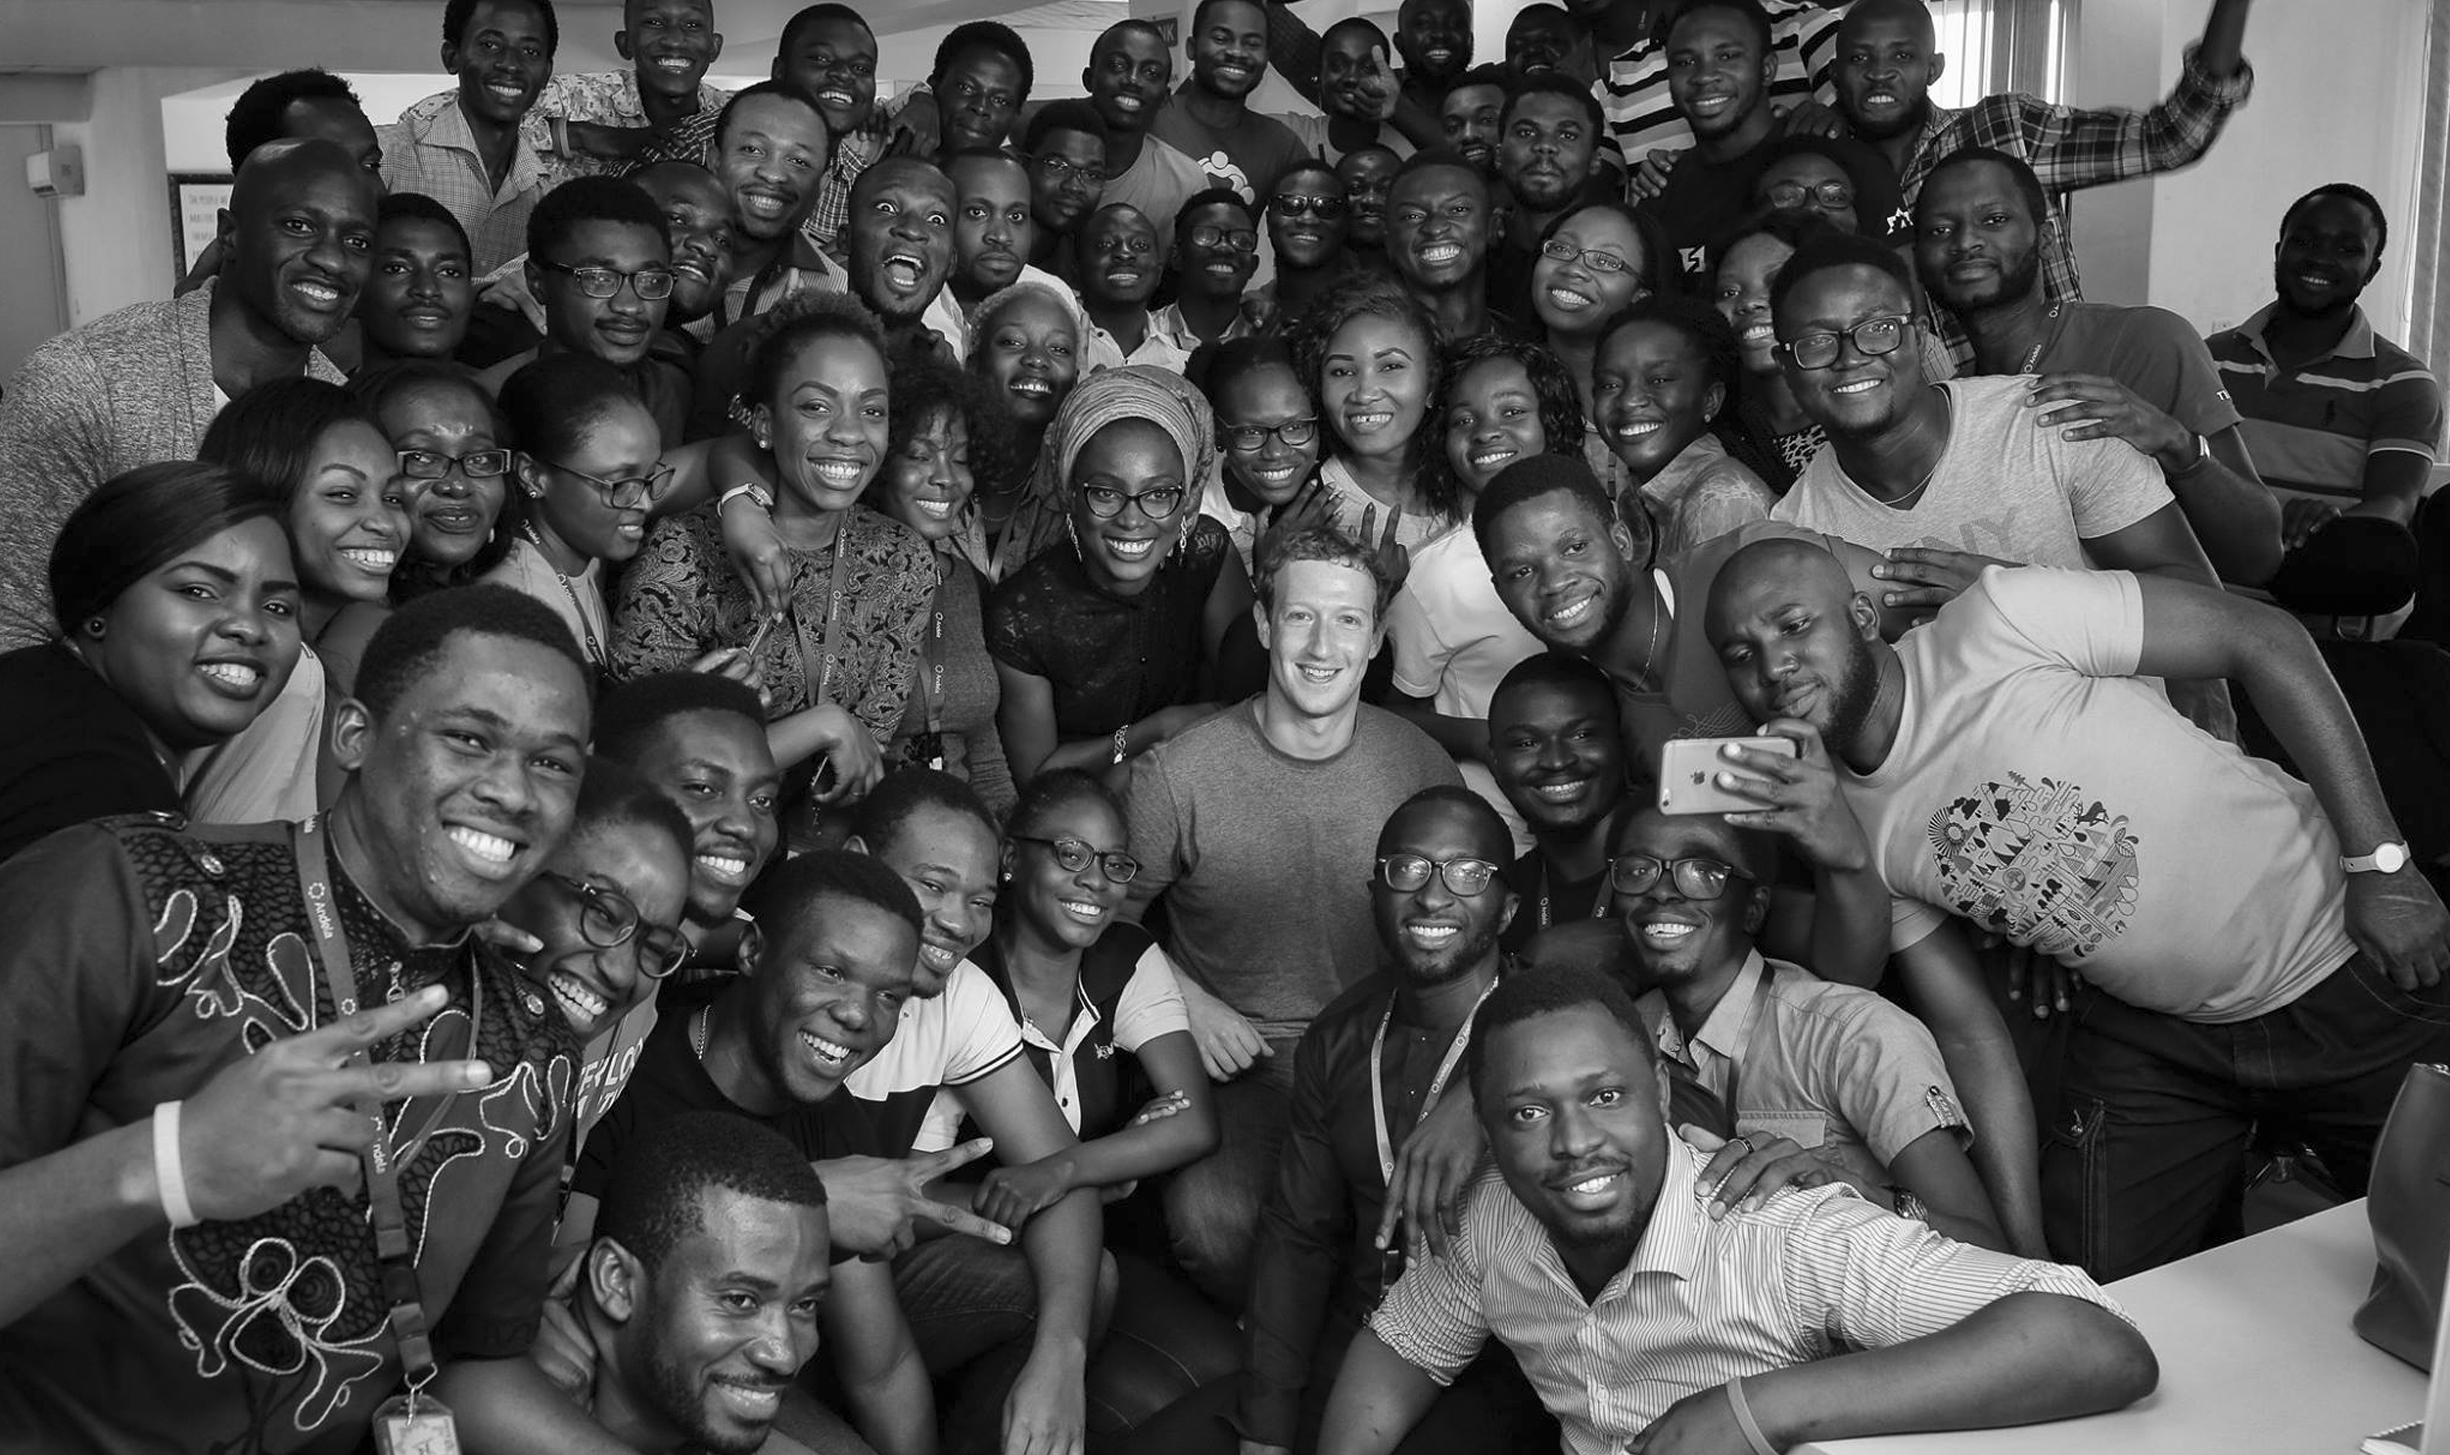 Facebook CEO Mark Zuckerberg poses for a photo with engineers at a startup called Andela in Lagos, Nigeria, in September.